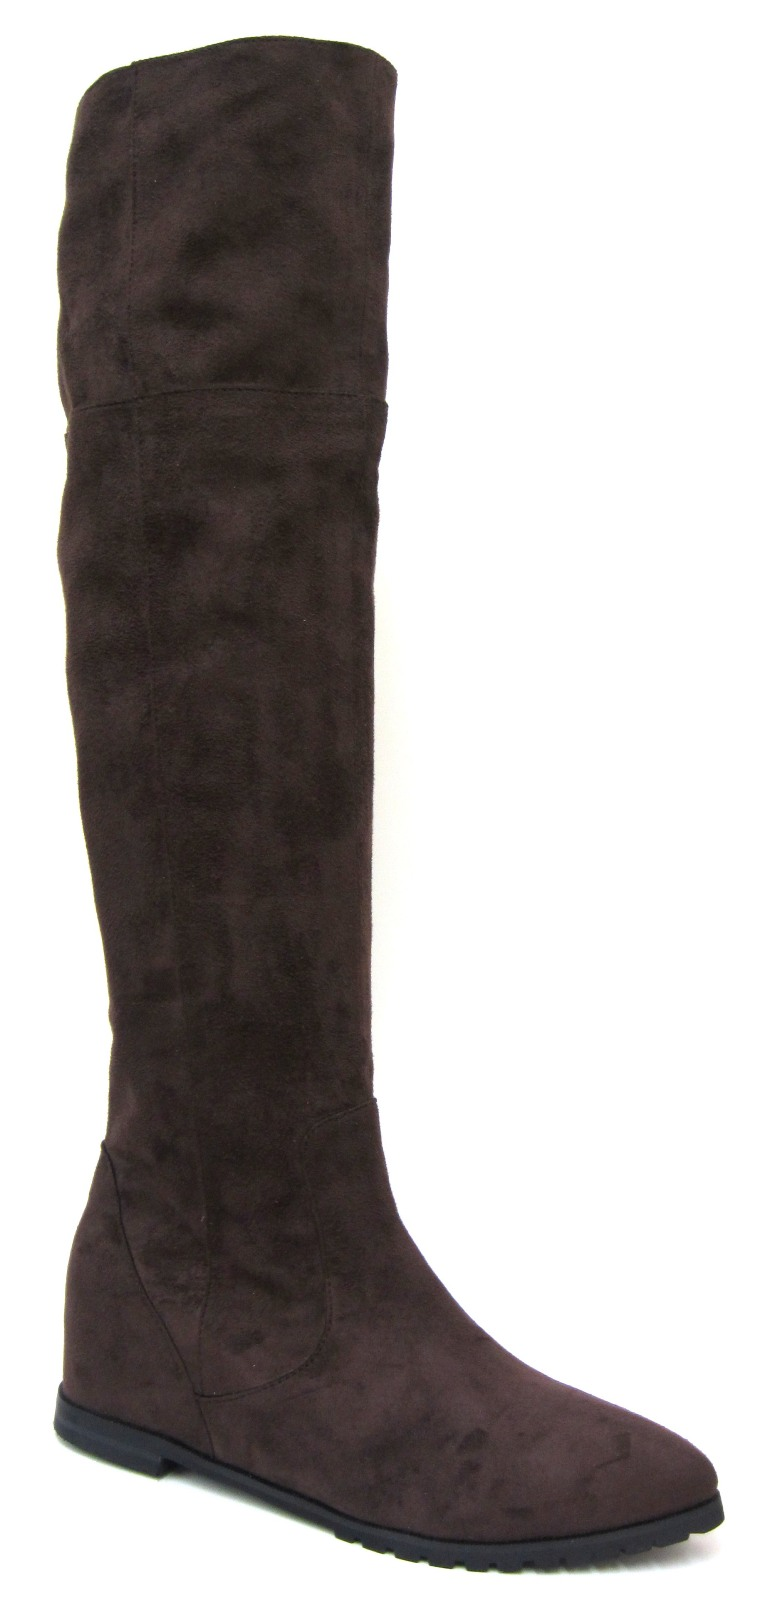 Take it up a notch with our collection of knee high boots, from smart riding styles and chunky biker boots to thigh high suede boots and lace up Timberlands.